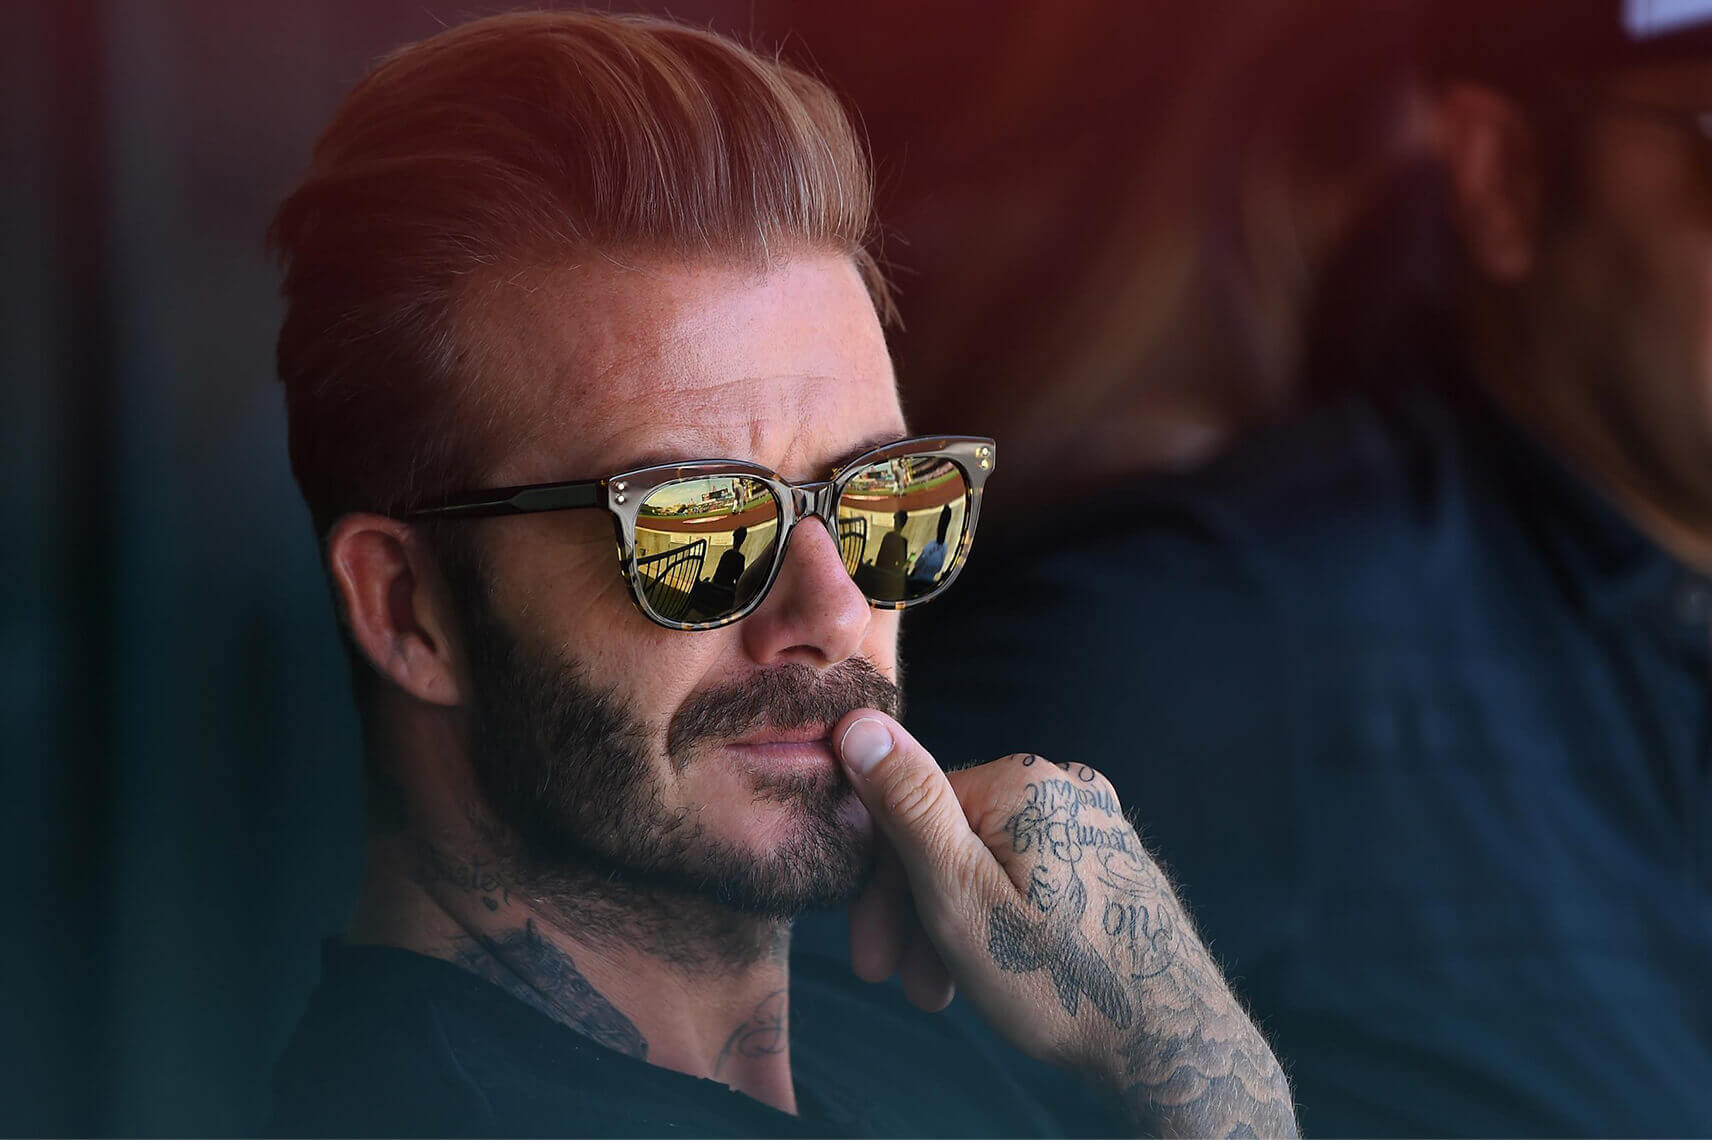 David Beckham Hair Transplant Speculations & 422 predictions